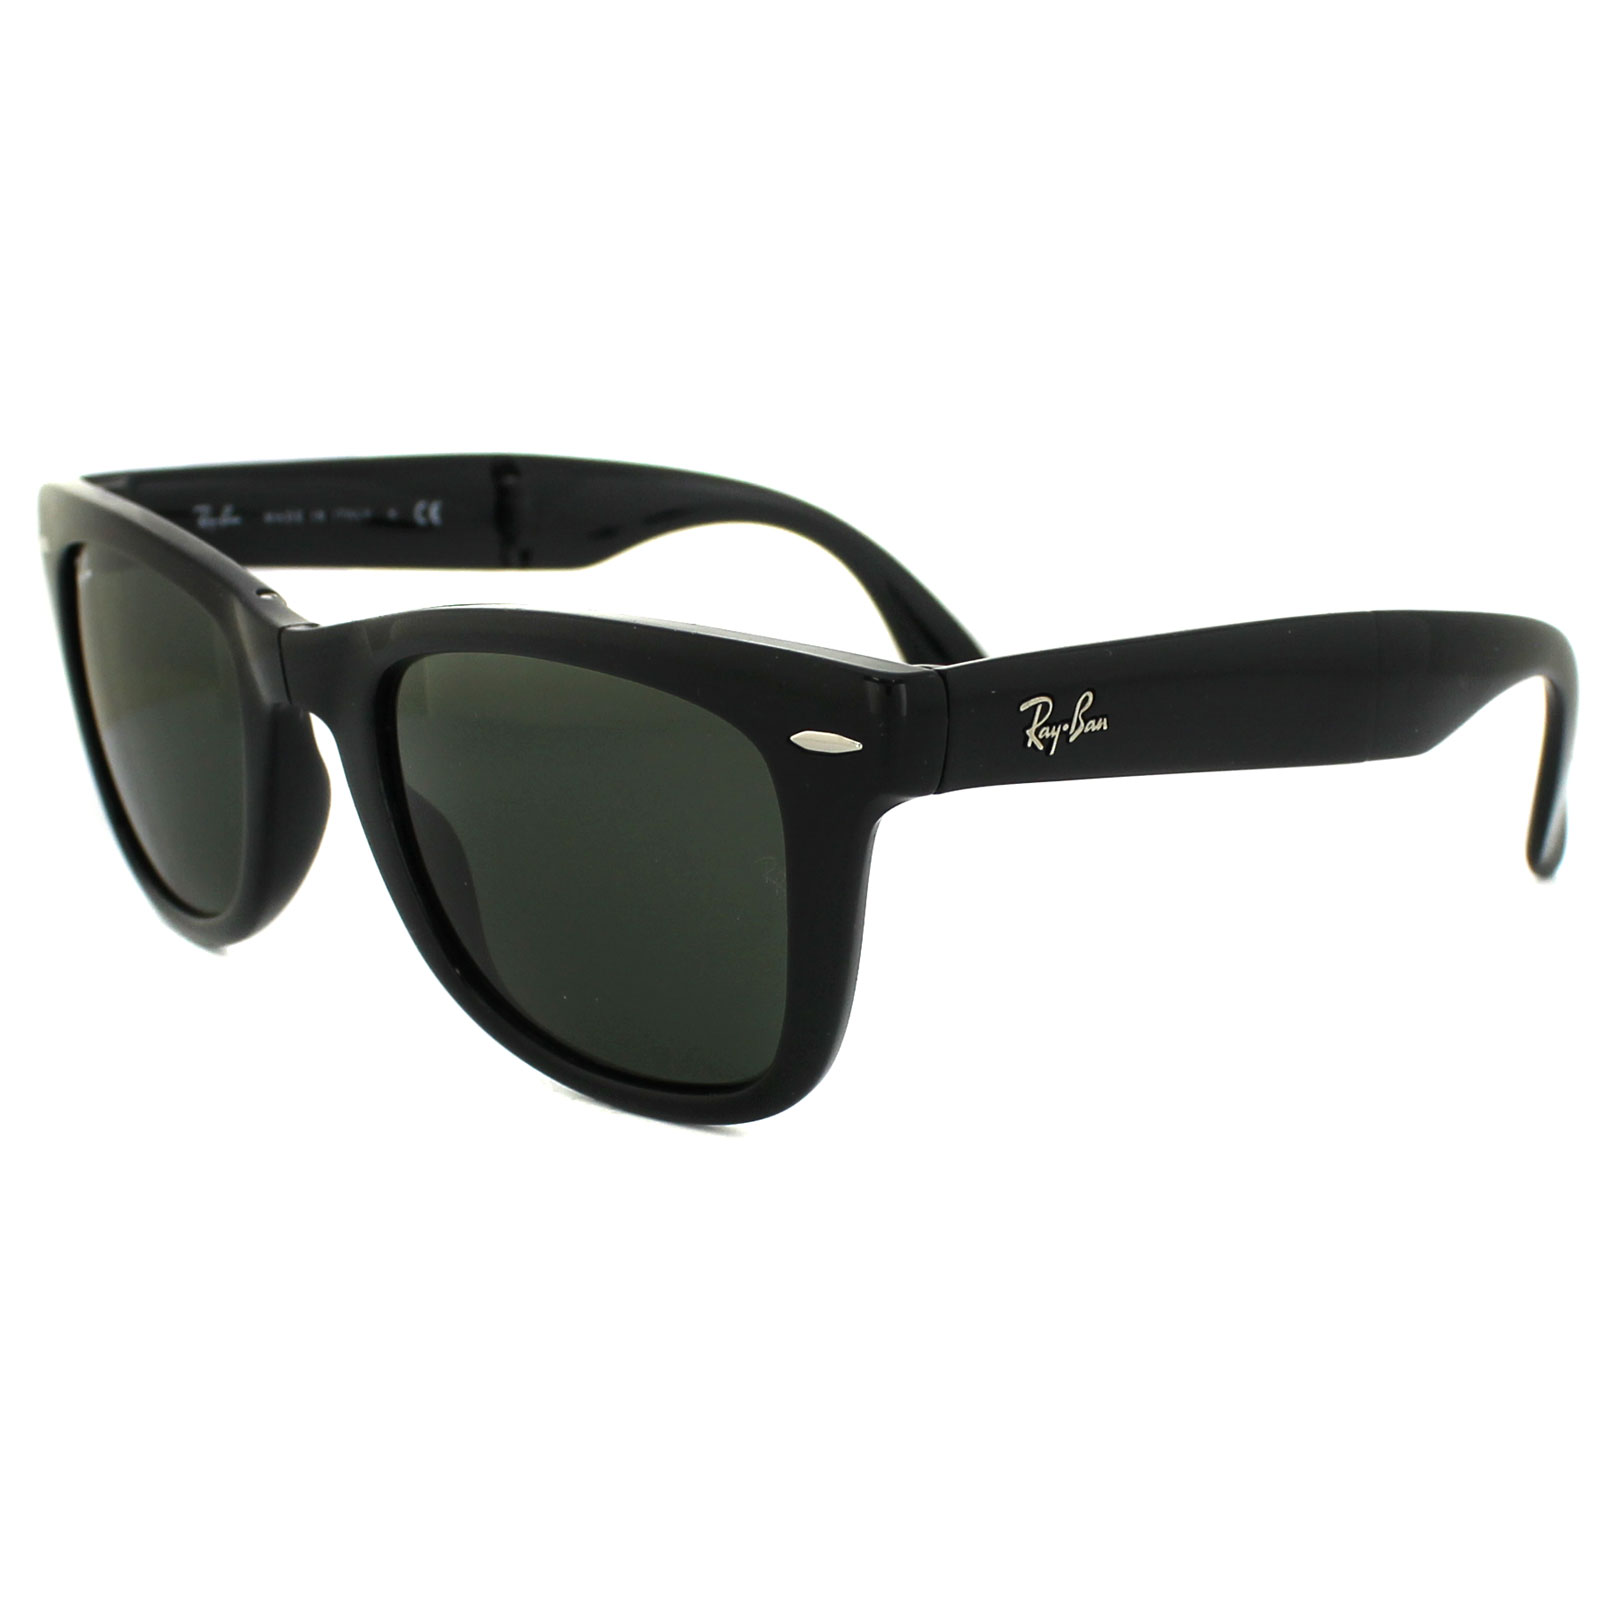 ebe748943eac4 Sentinel Ray-Ban Sunglasses Folding Wayfarer 4105 Black Green 601 Medium  50mm